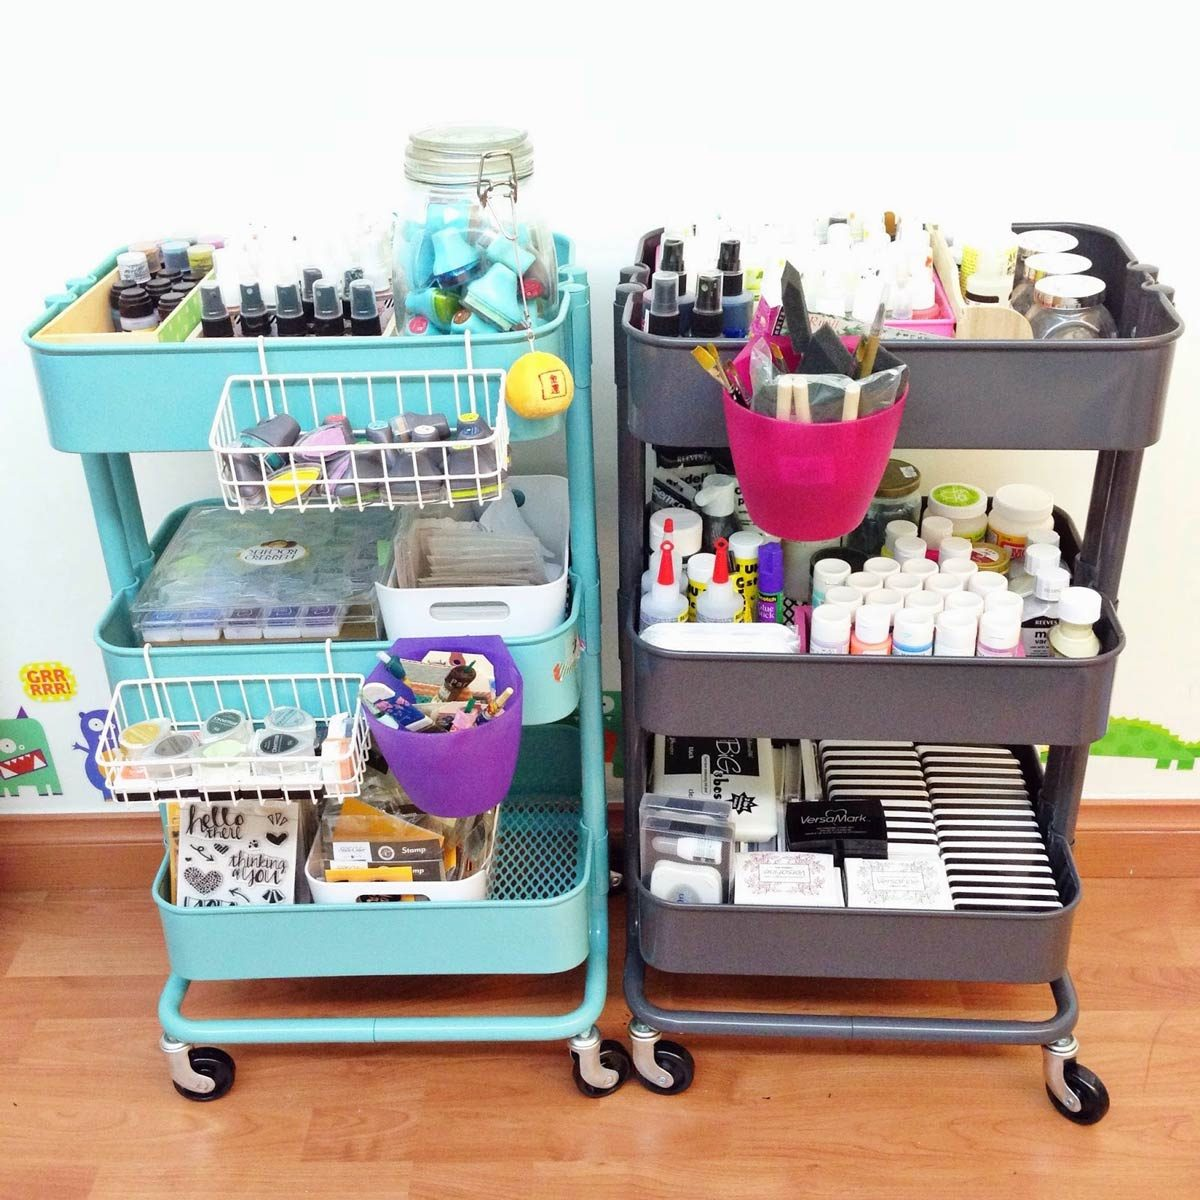 How to be Organized for School: Utilize a Kitchen Cart